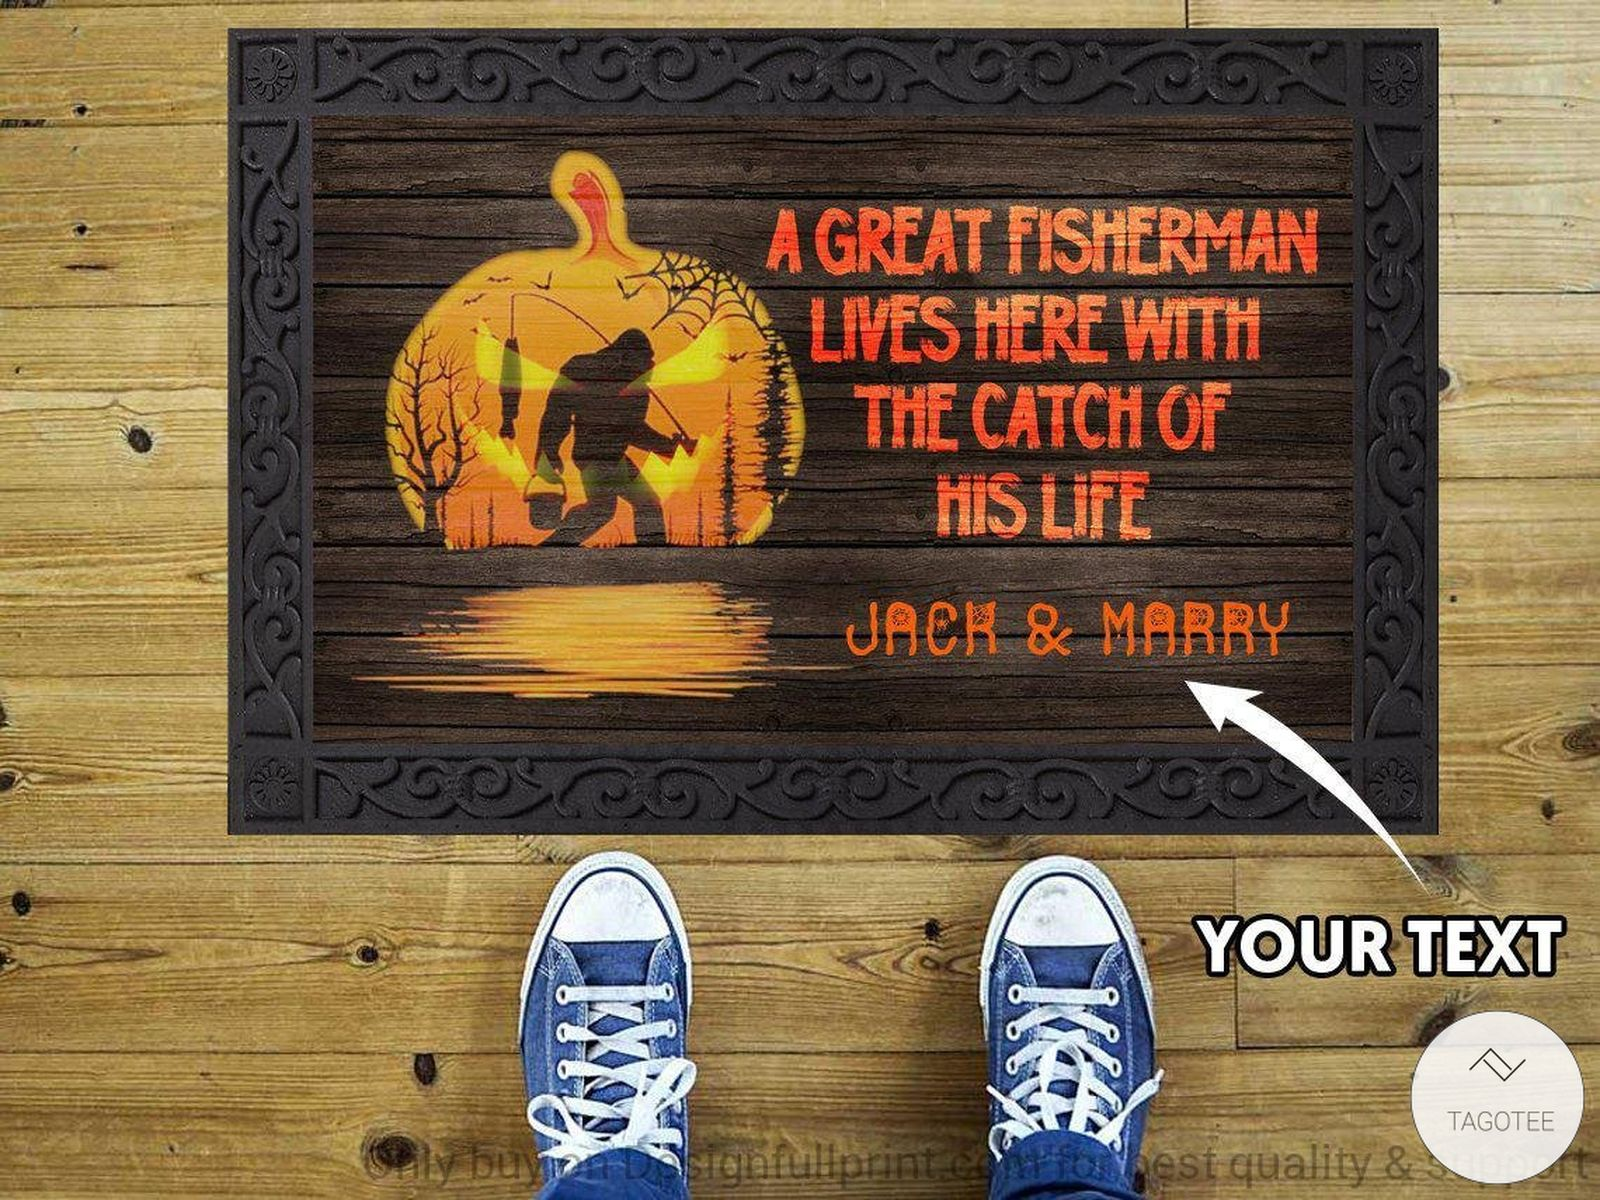 Personalized A Great Fisherman Lives Here With The Catch Of His Life Fishing Bigfoot Halloween Doormat